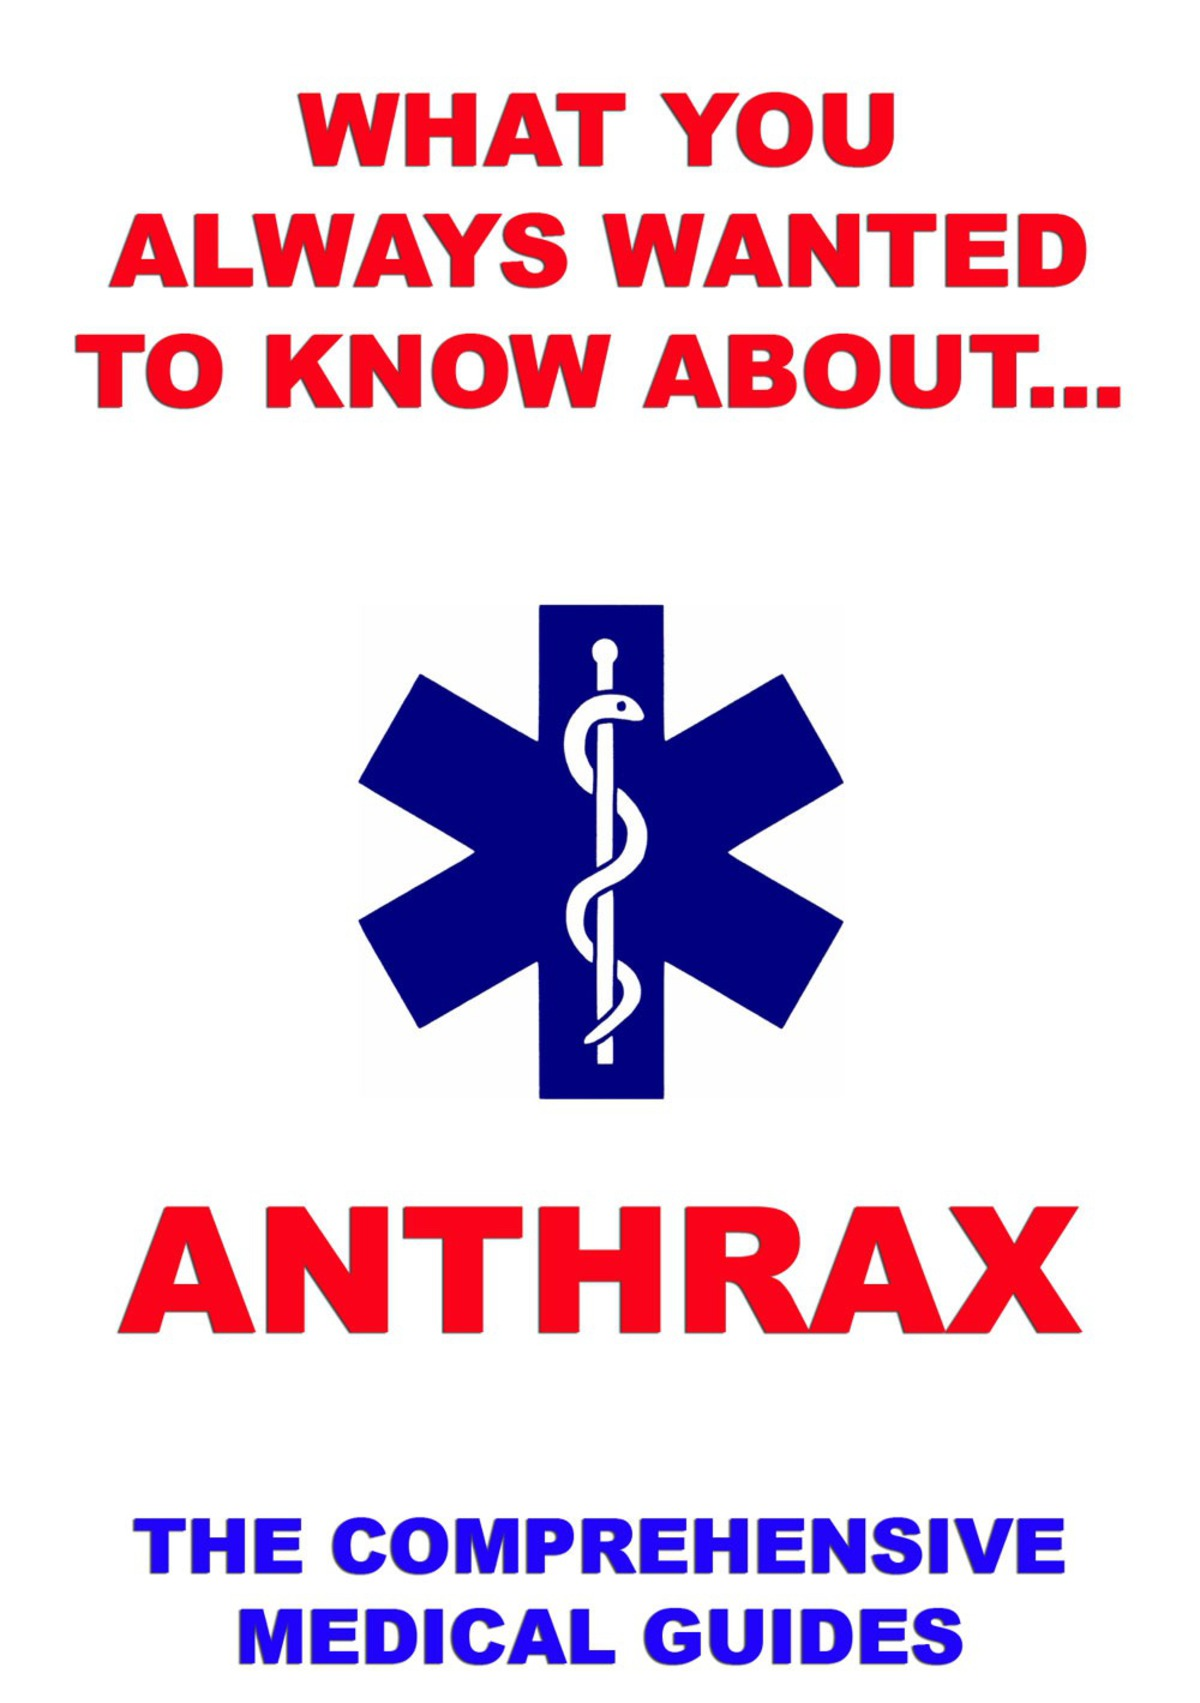 What You Always Wanted To Know About Anthrax: The Comprehensive Medical Guides